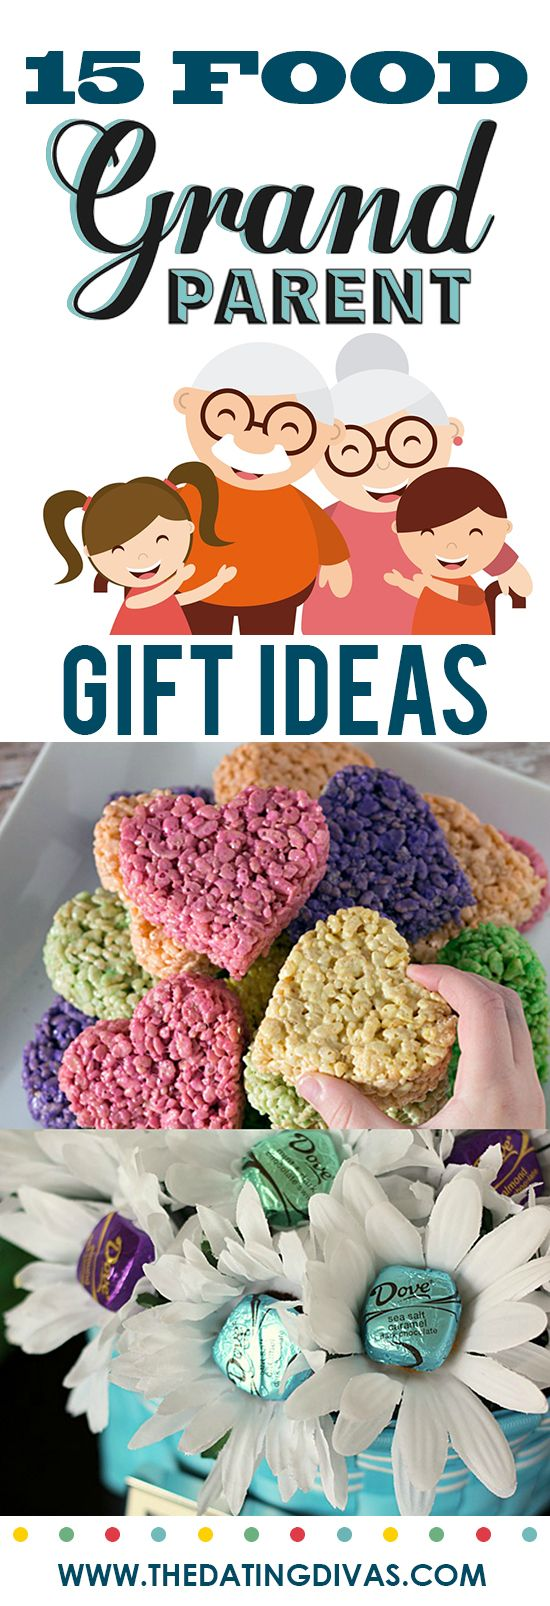 Food gift ideas for Grandparents Day